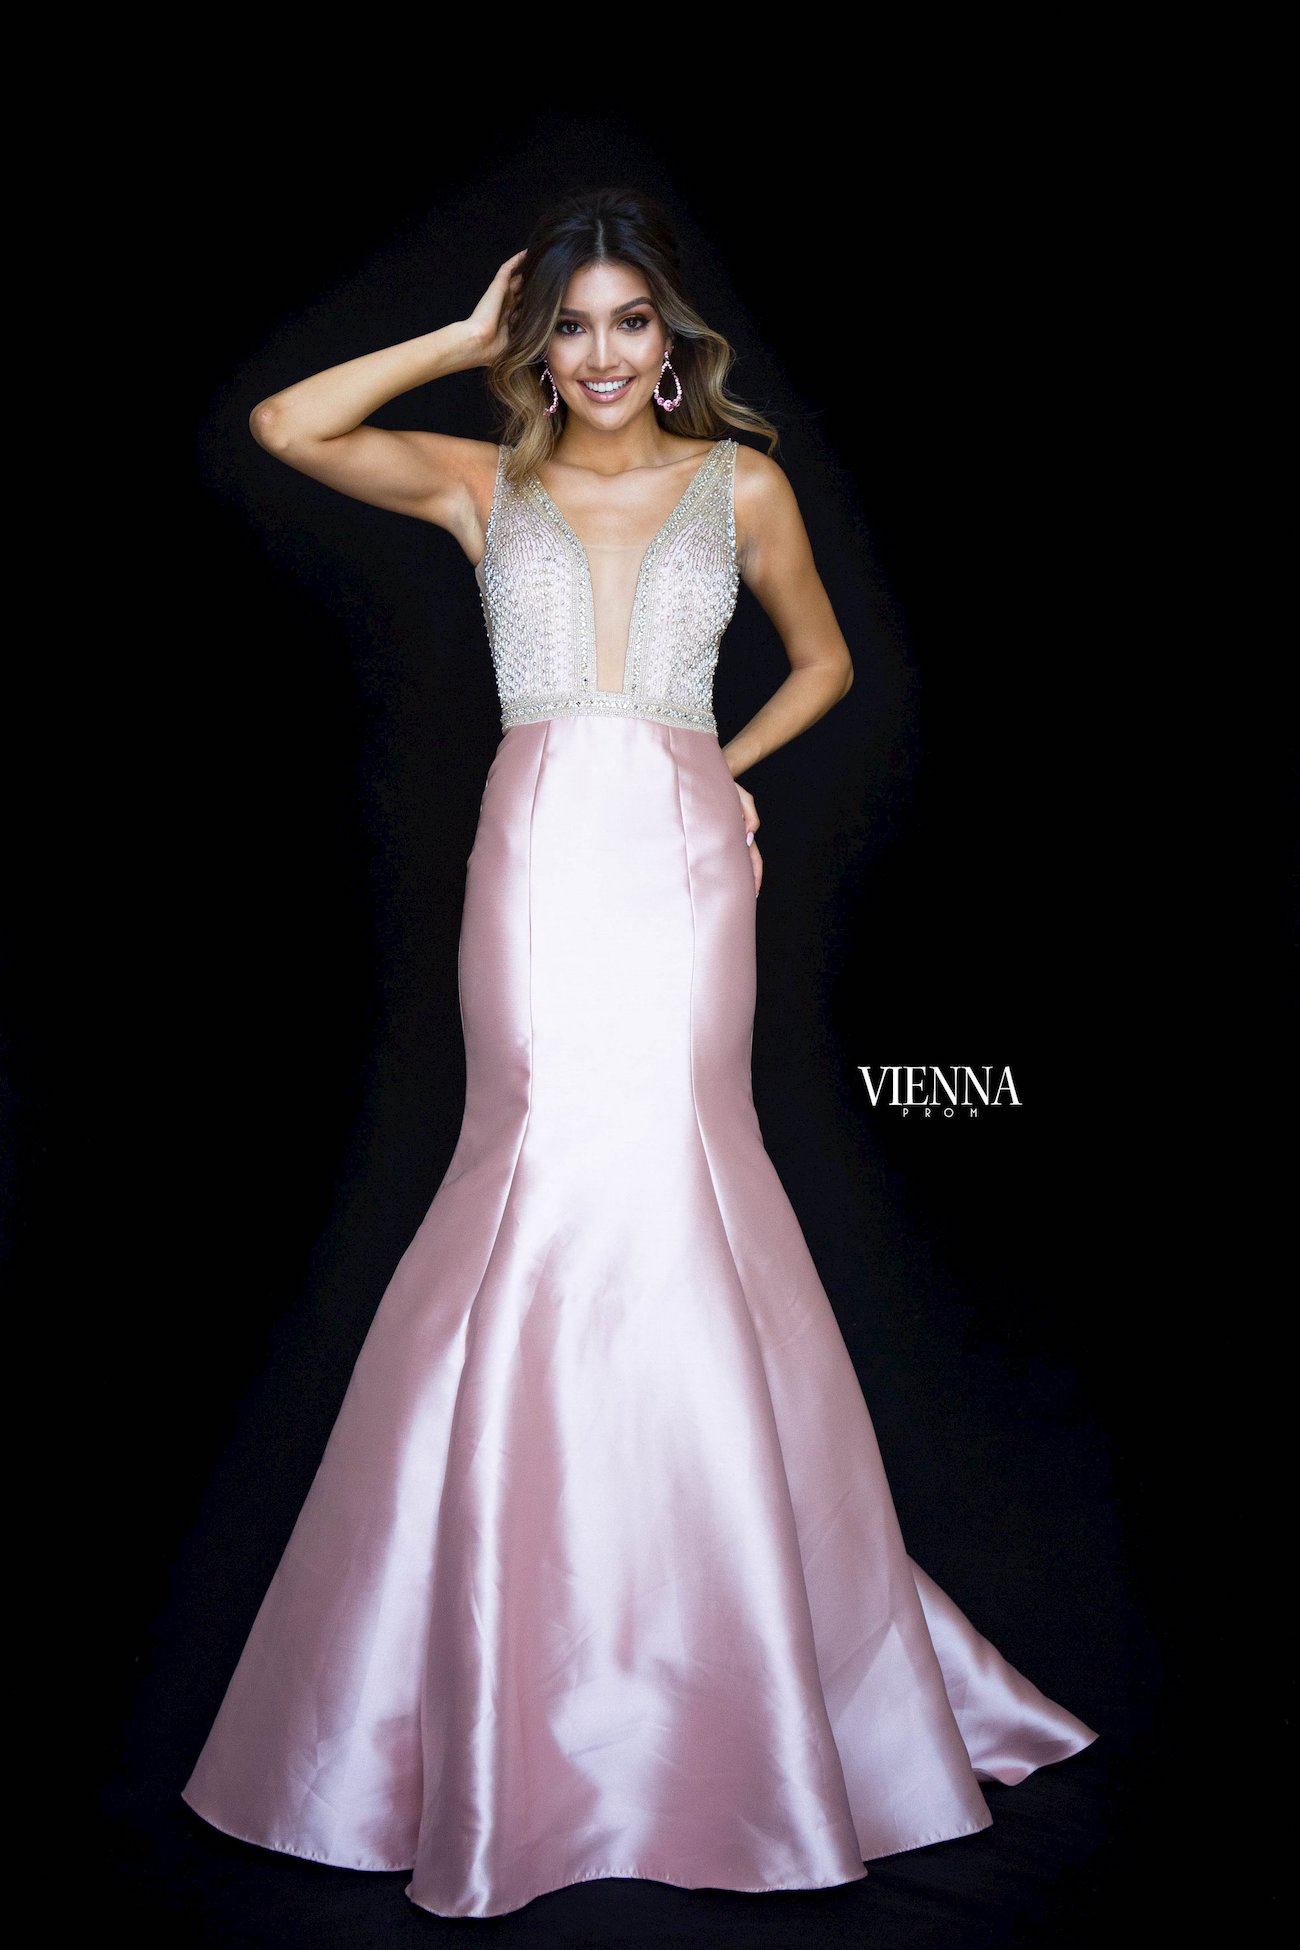 Style 8295 Vienna Pink Size 10 Pageant Backless Tall Height Mermaid Dress on Queenly